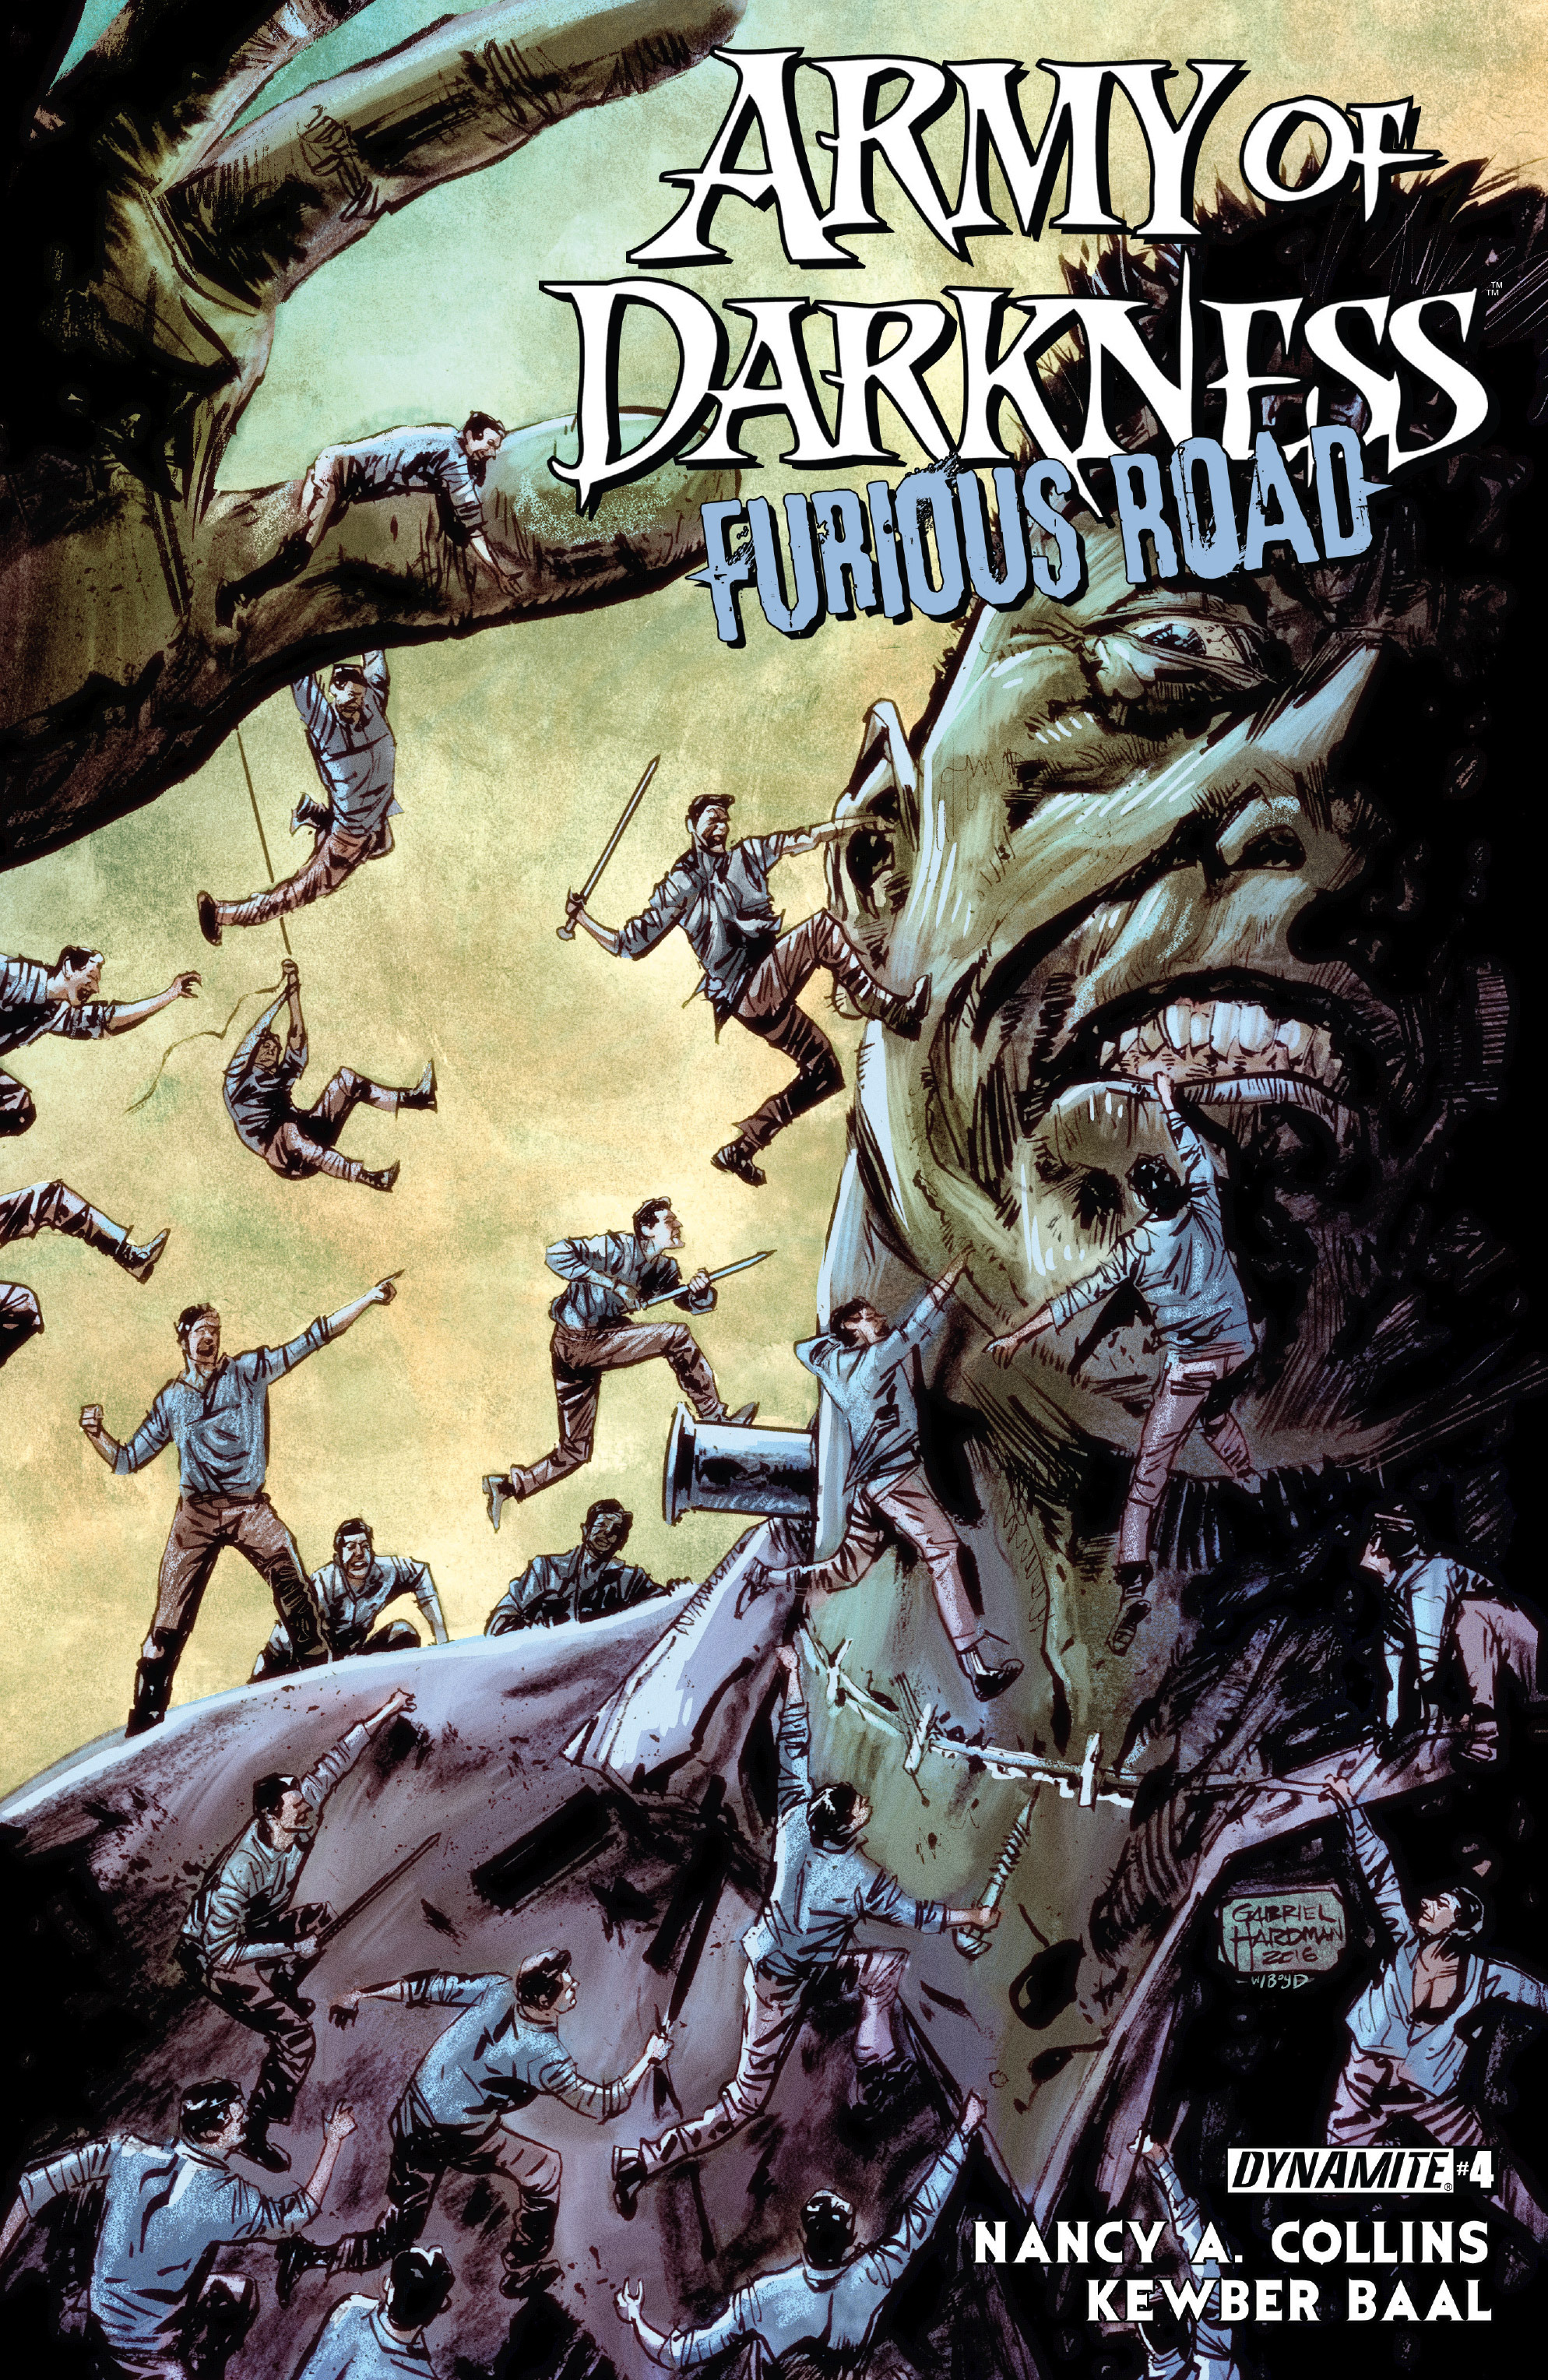 Read online Army of Darkness: Furious Road comic -  Issue #4 - 1